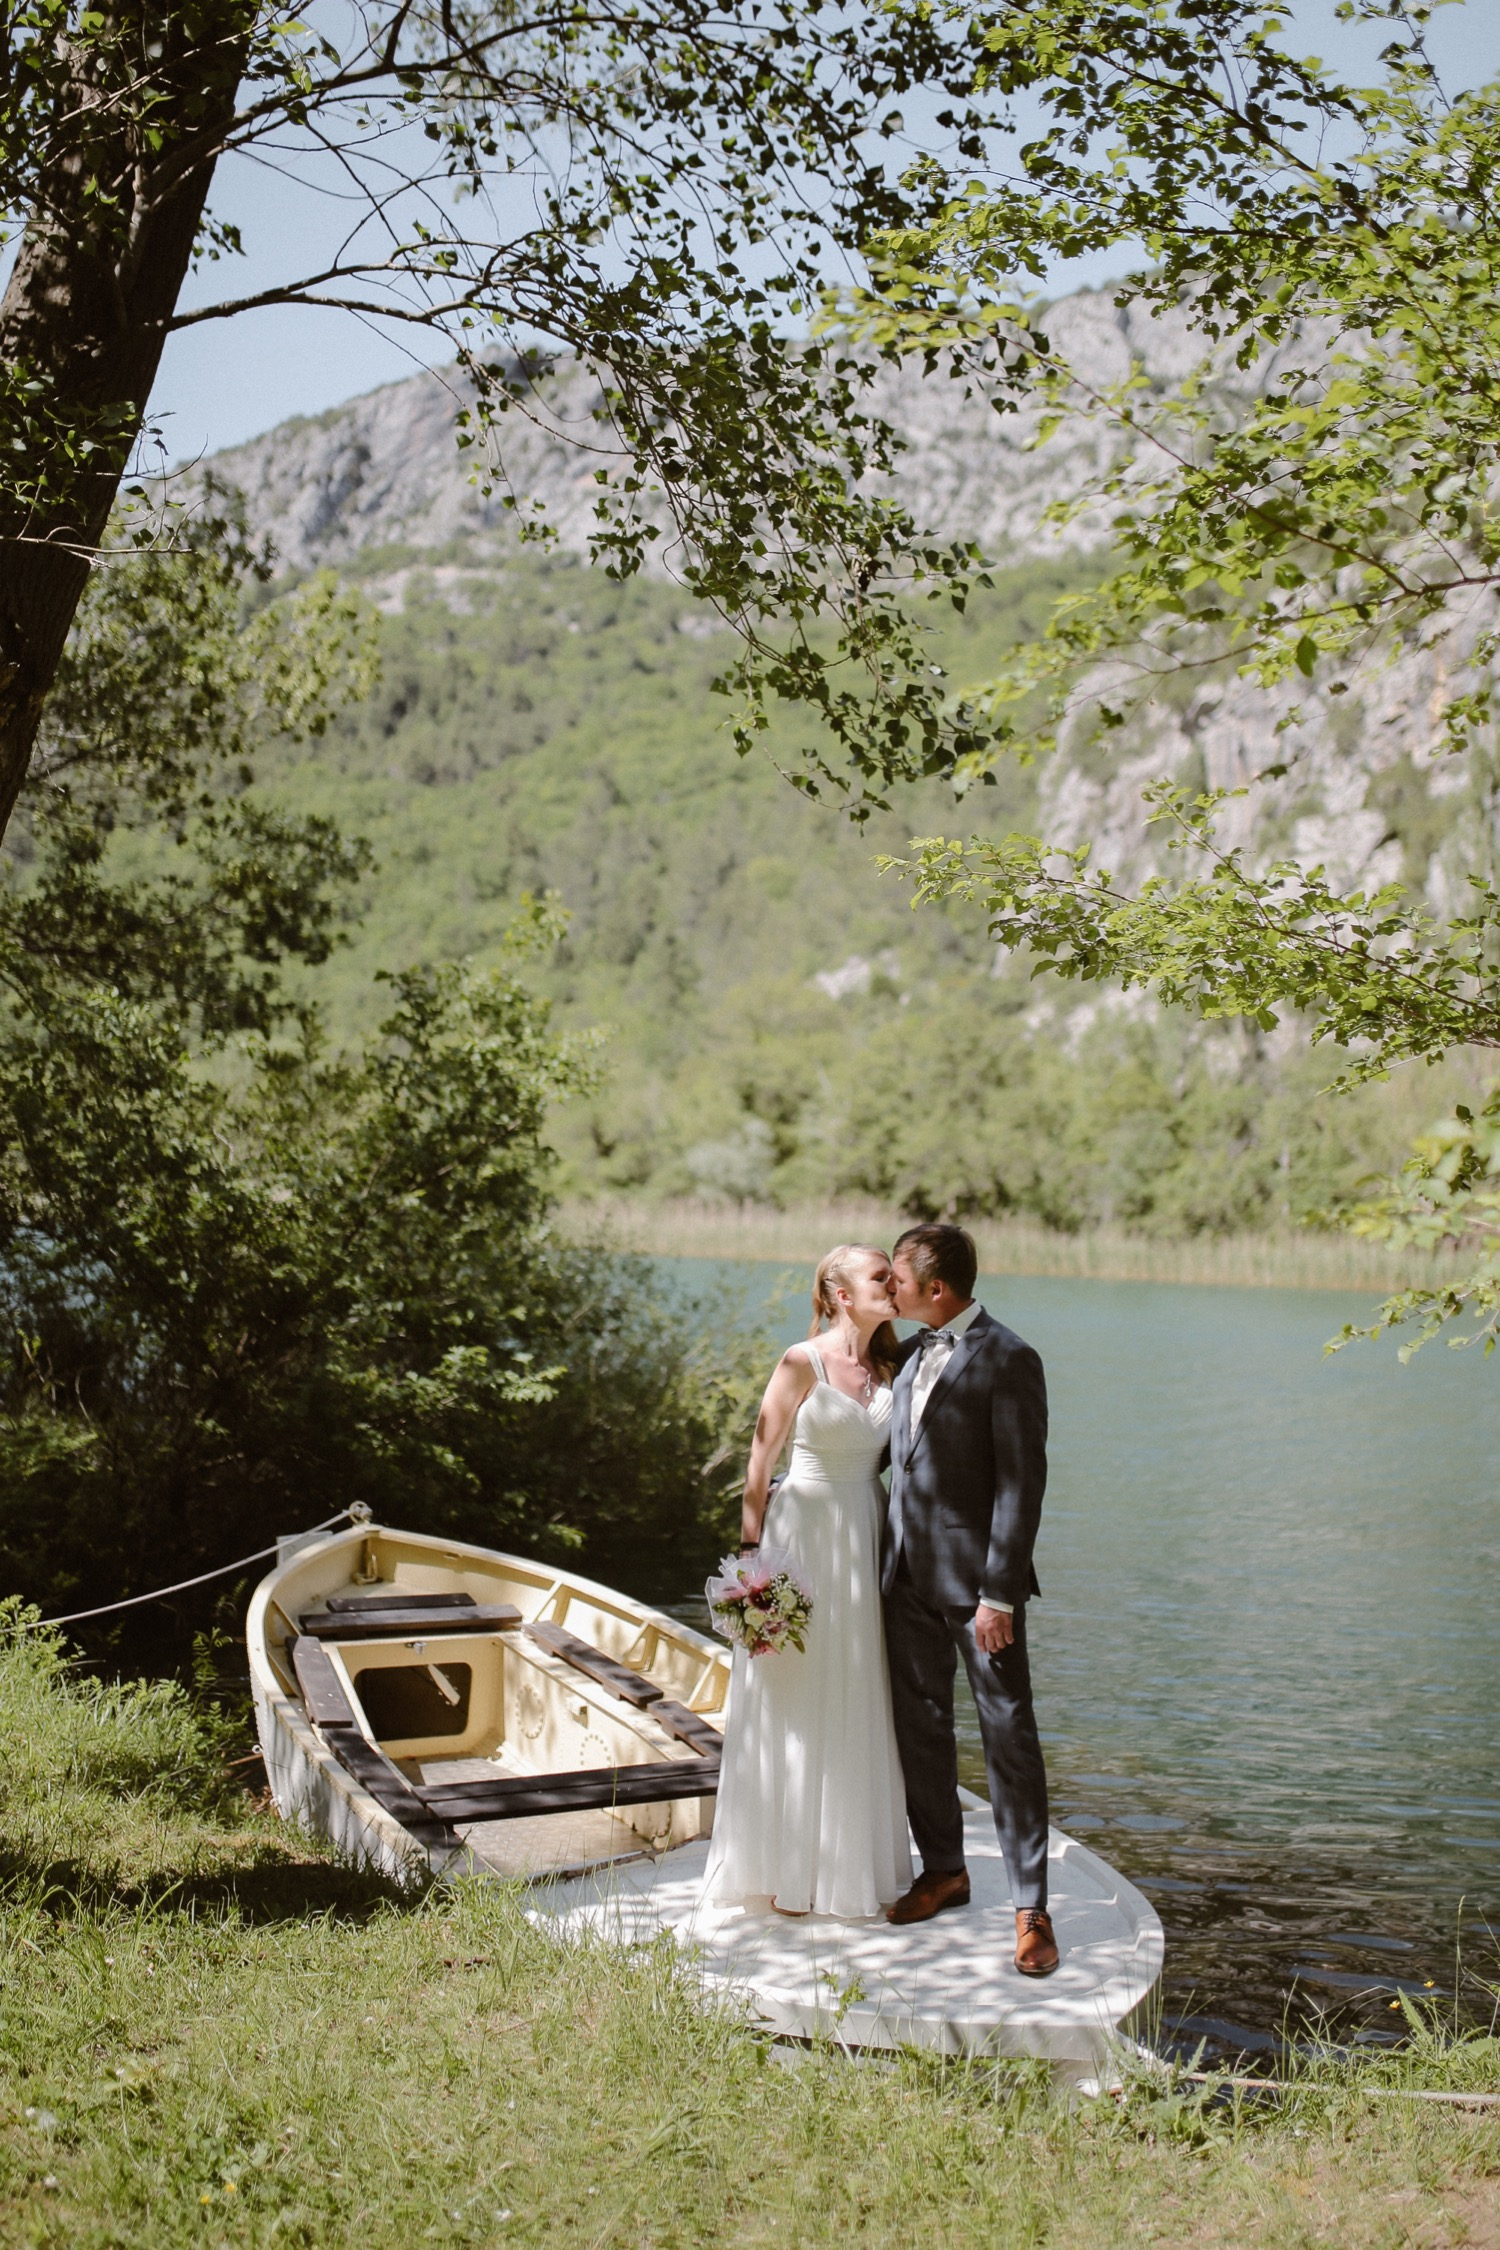 Croatia beach elopement hilke thomas love and ventures photography 75 | Croatia Elopement Photographer and Videographer